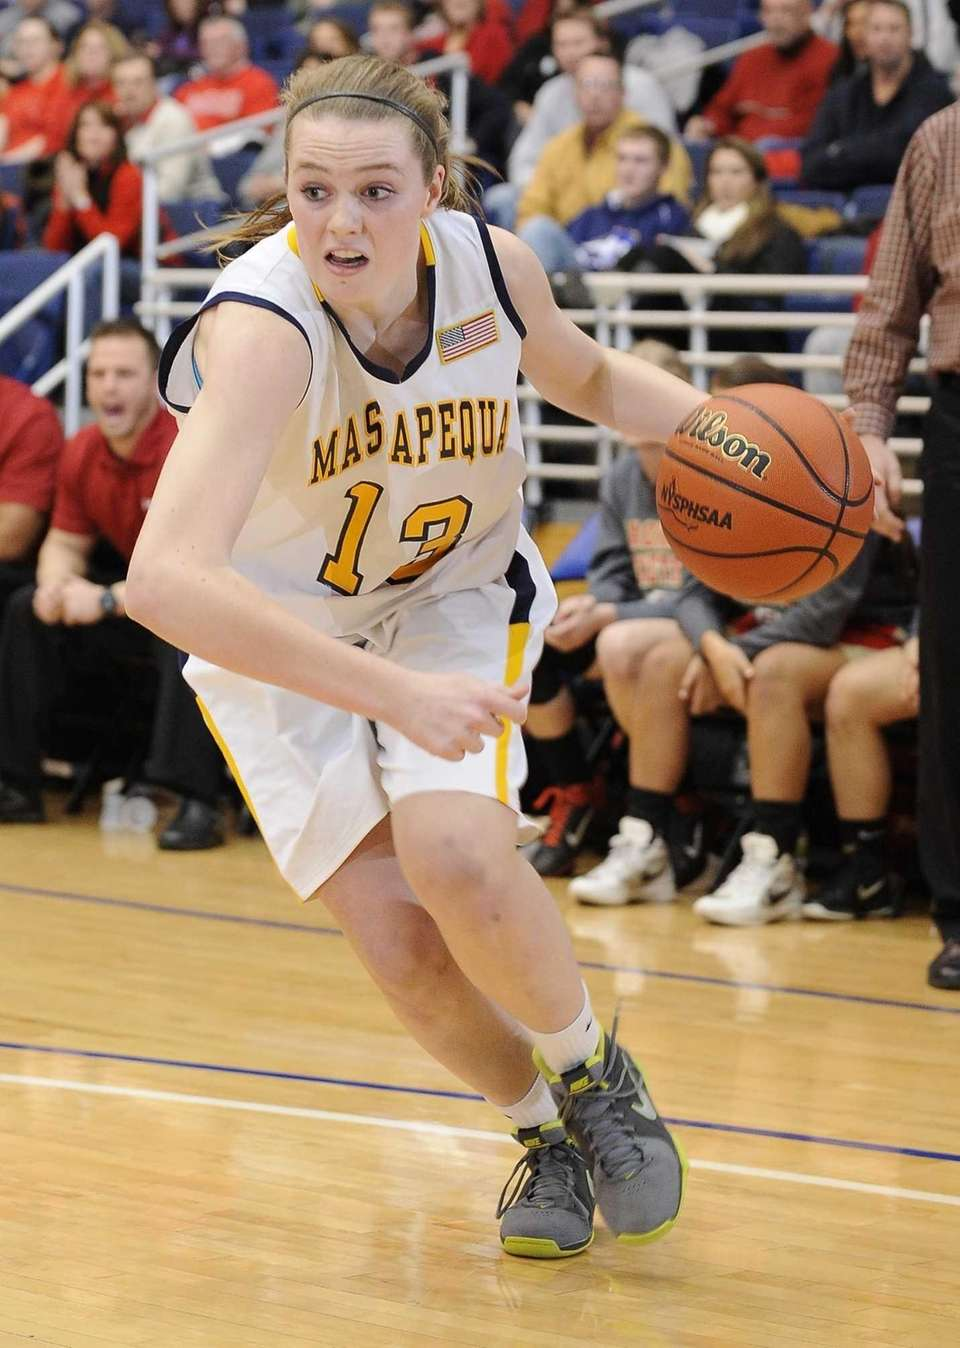 Massapequa's Meghan McCabe drives the ball against Sachem